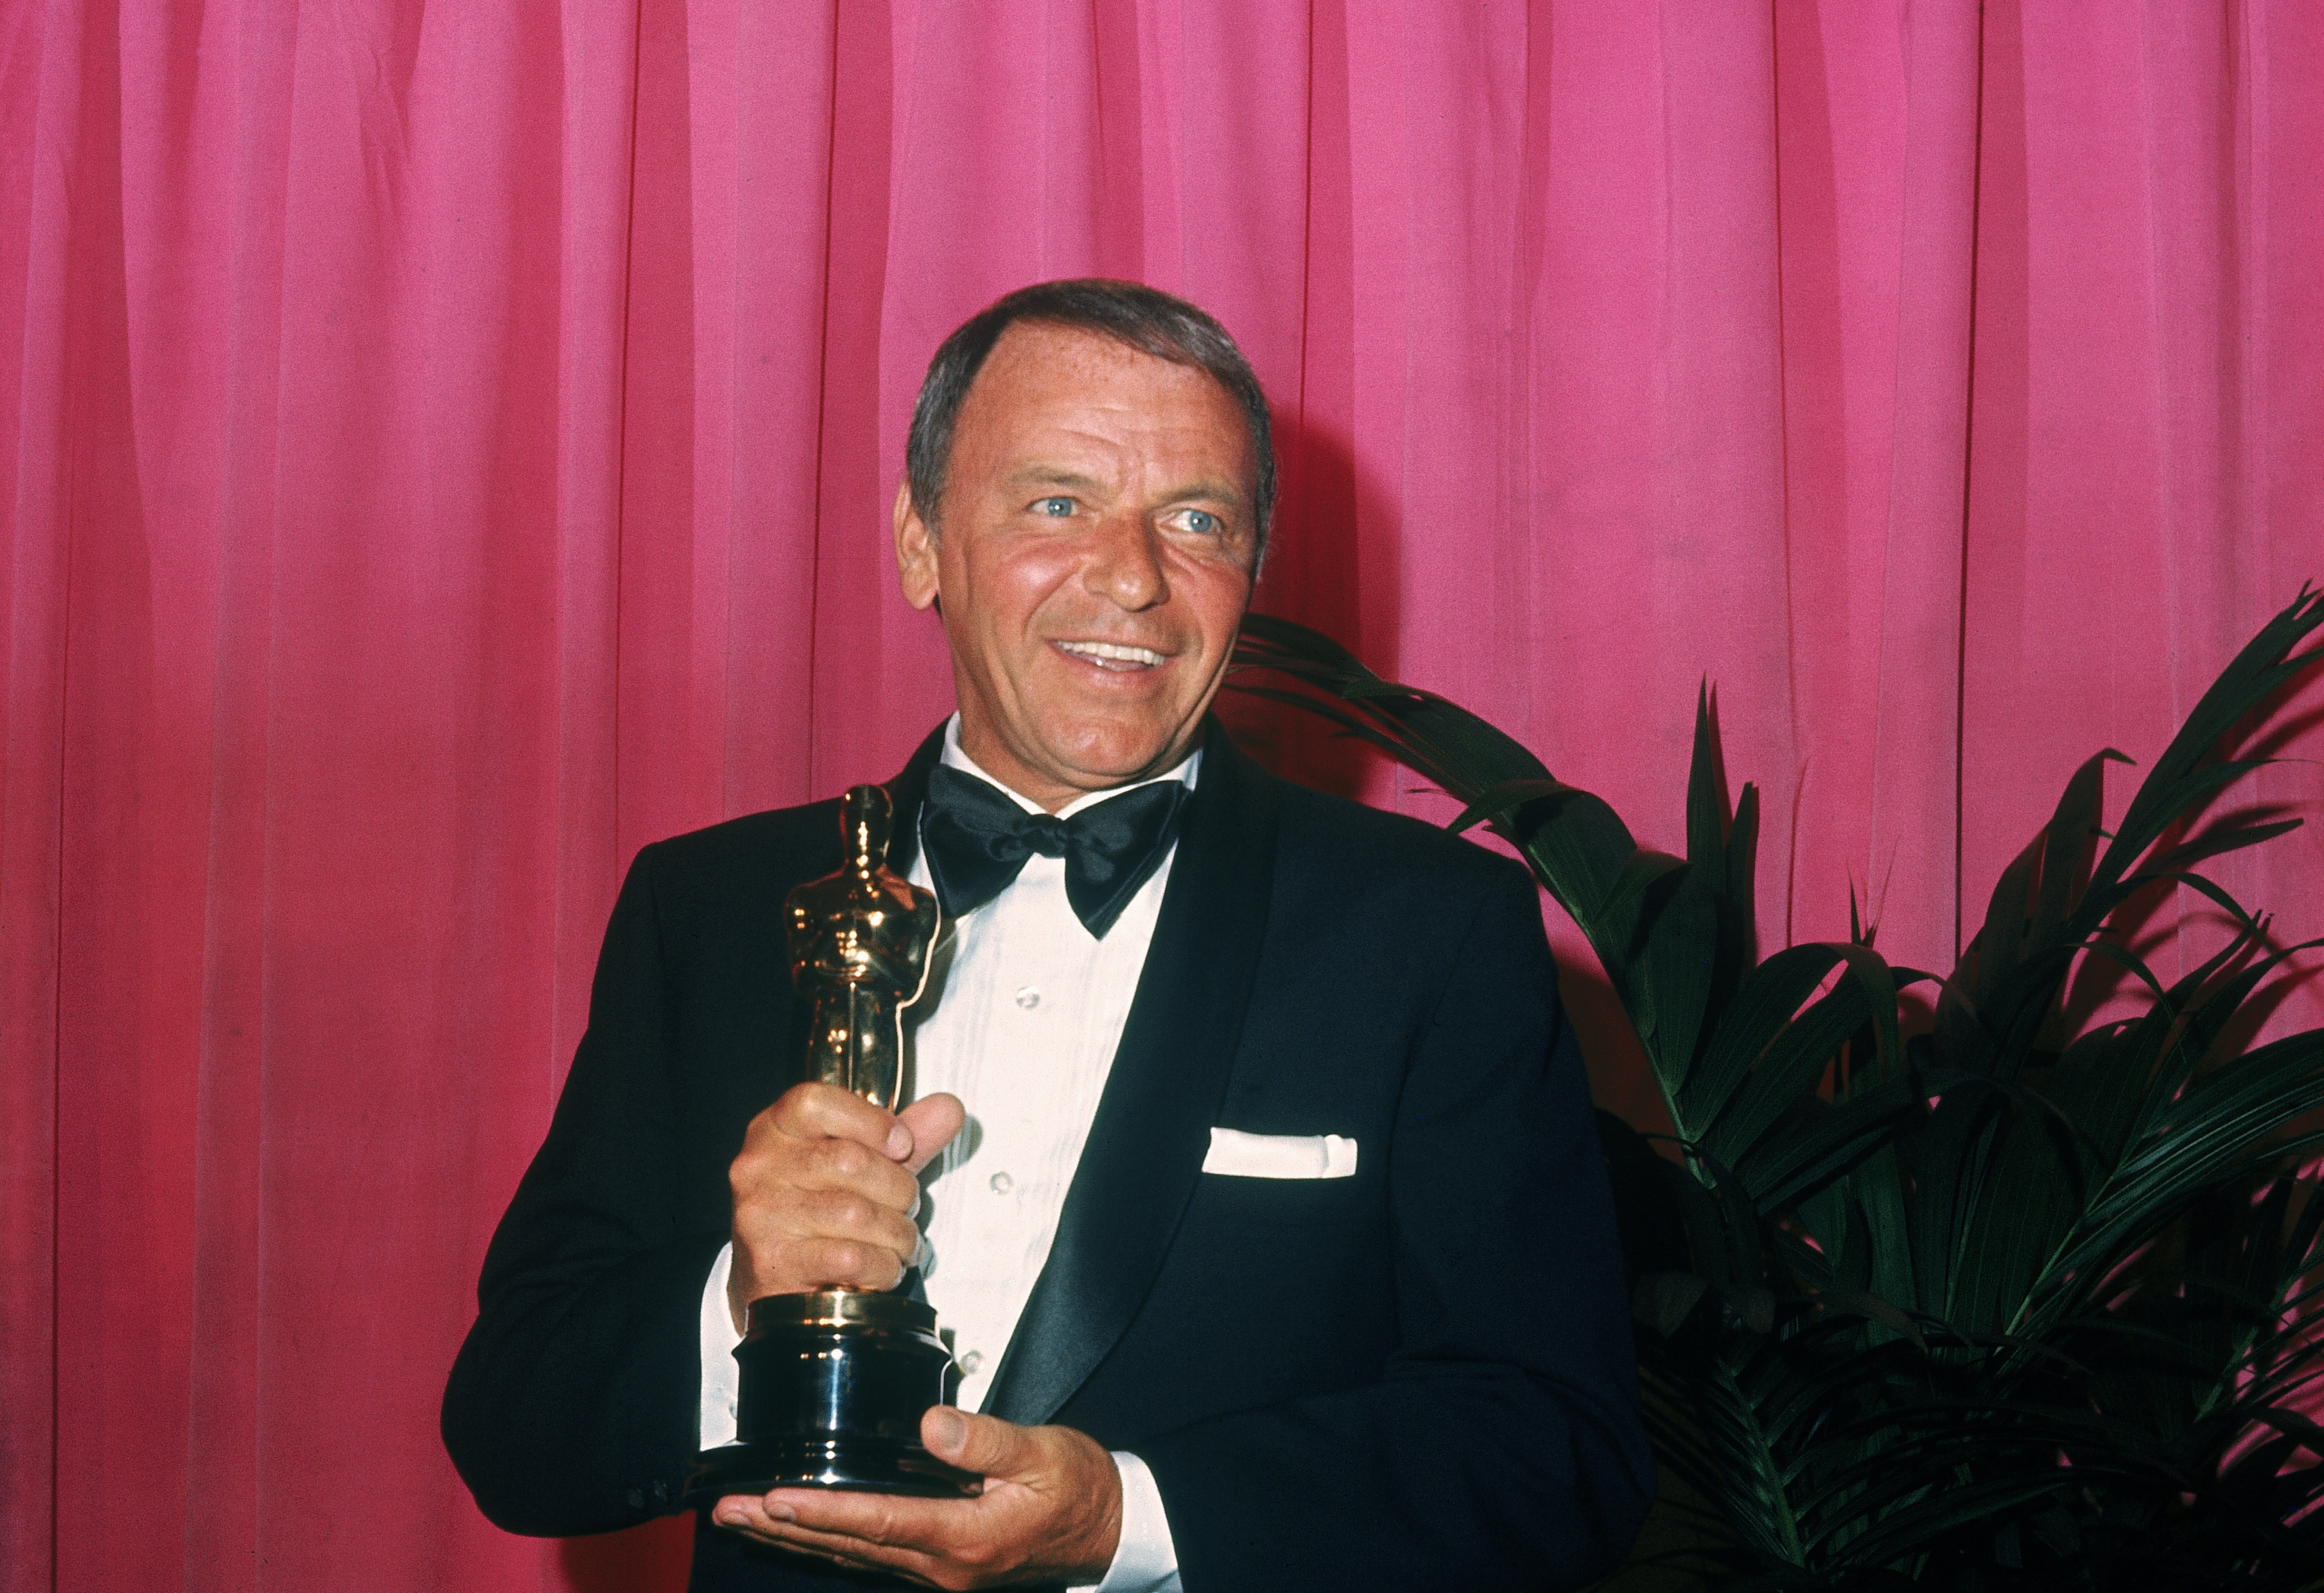 Caption: 5th April 1971: American singer and actor Frank Sinatra (1915 - 1998) holds his Jean Hersholt Humanitarian Award at the Academy Awards, Dorothy Chandler Pavilion, L.A. County Music Center, Los Angeles, Credit: Frank Edwards/Getty